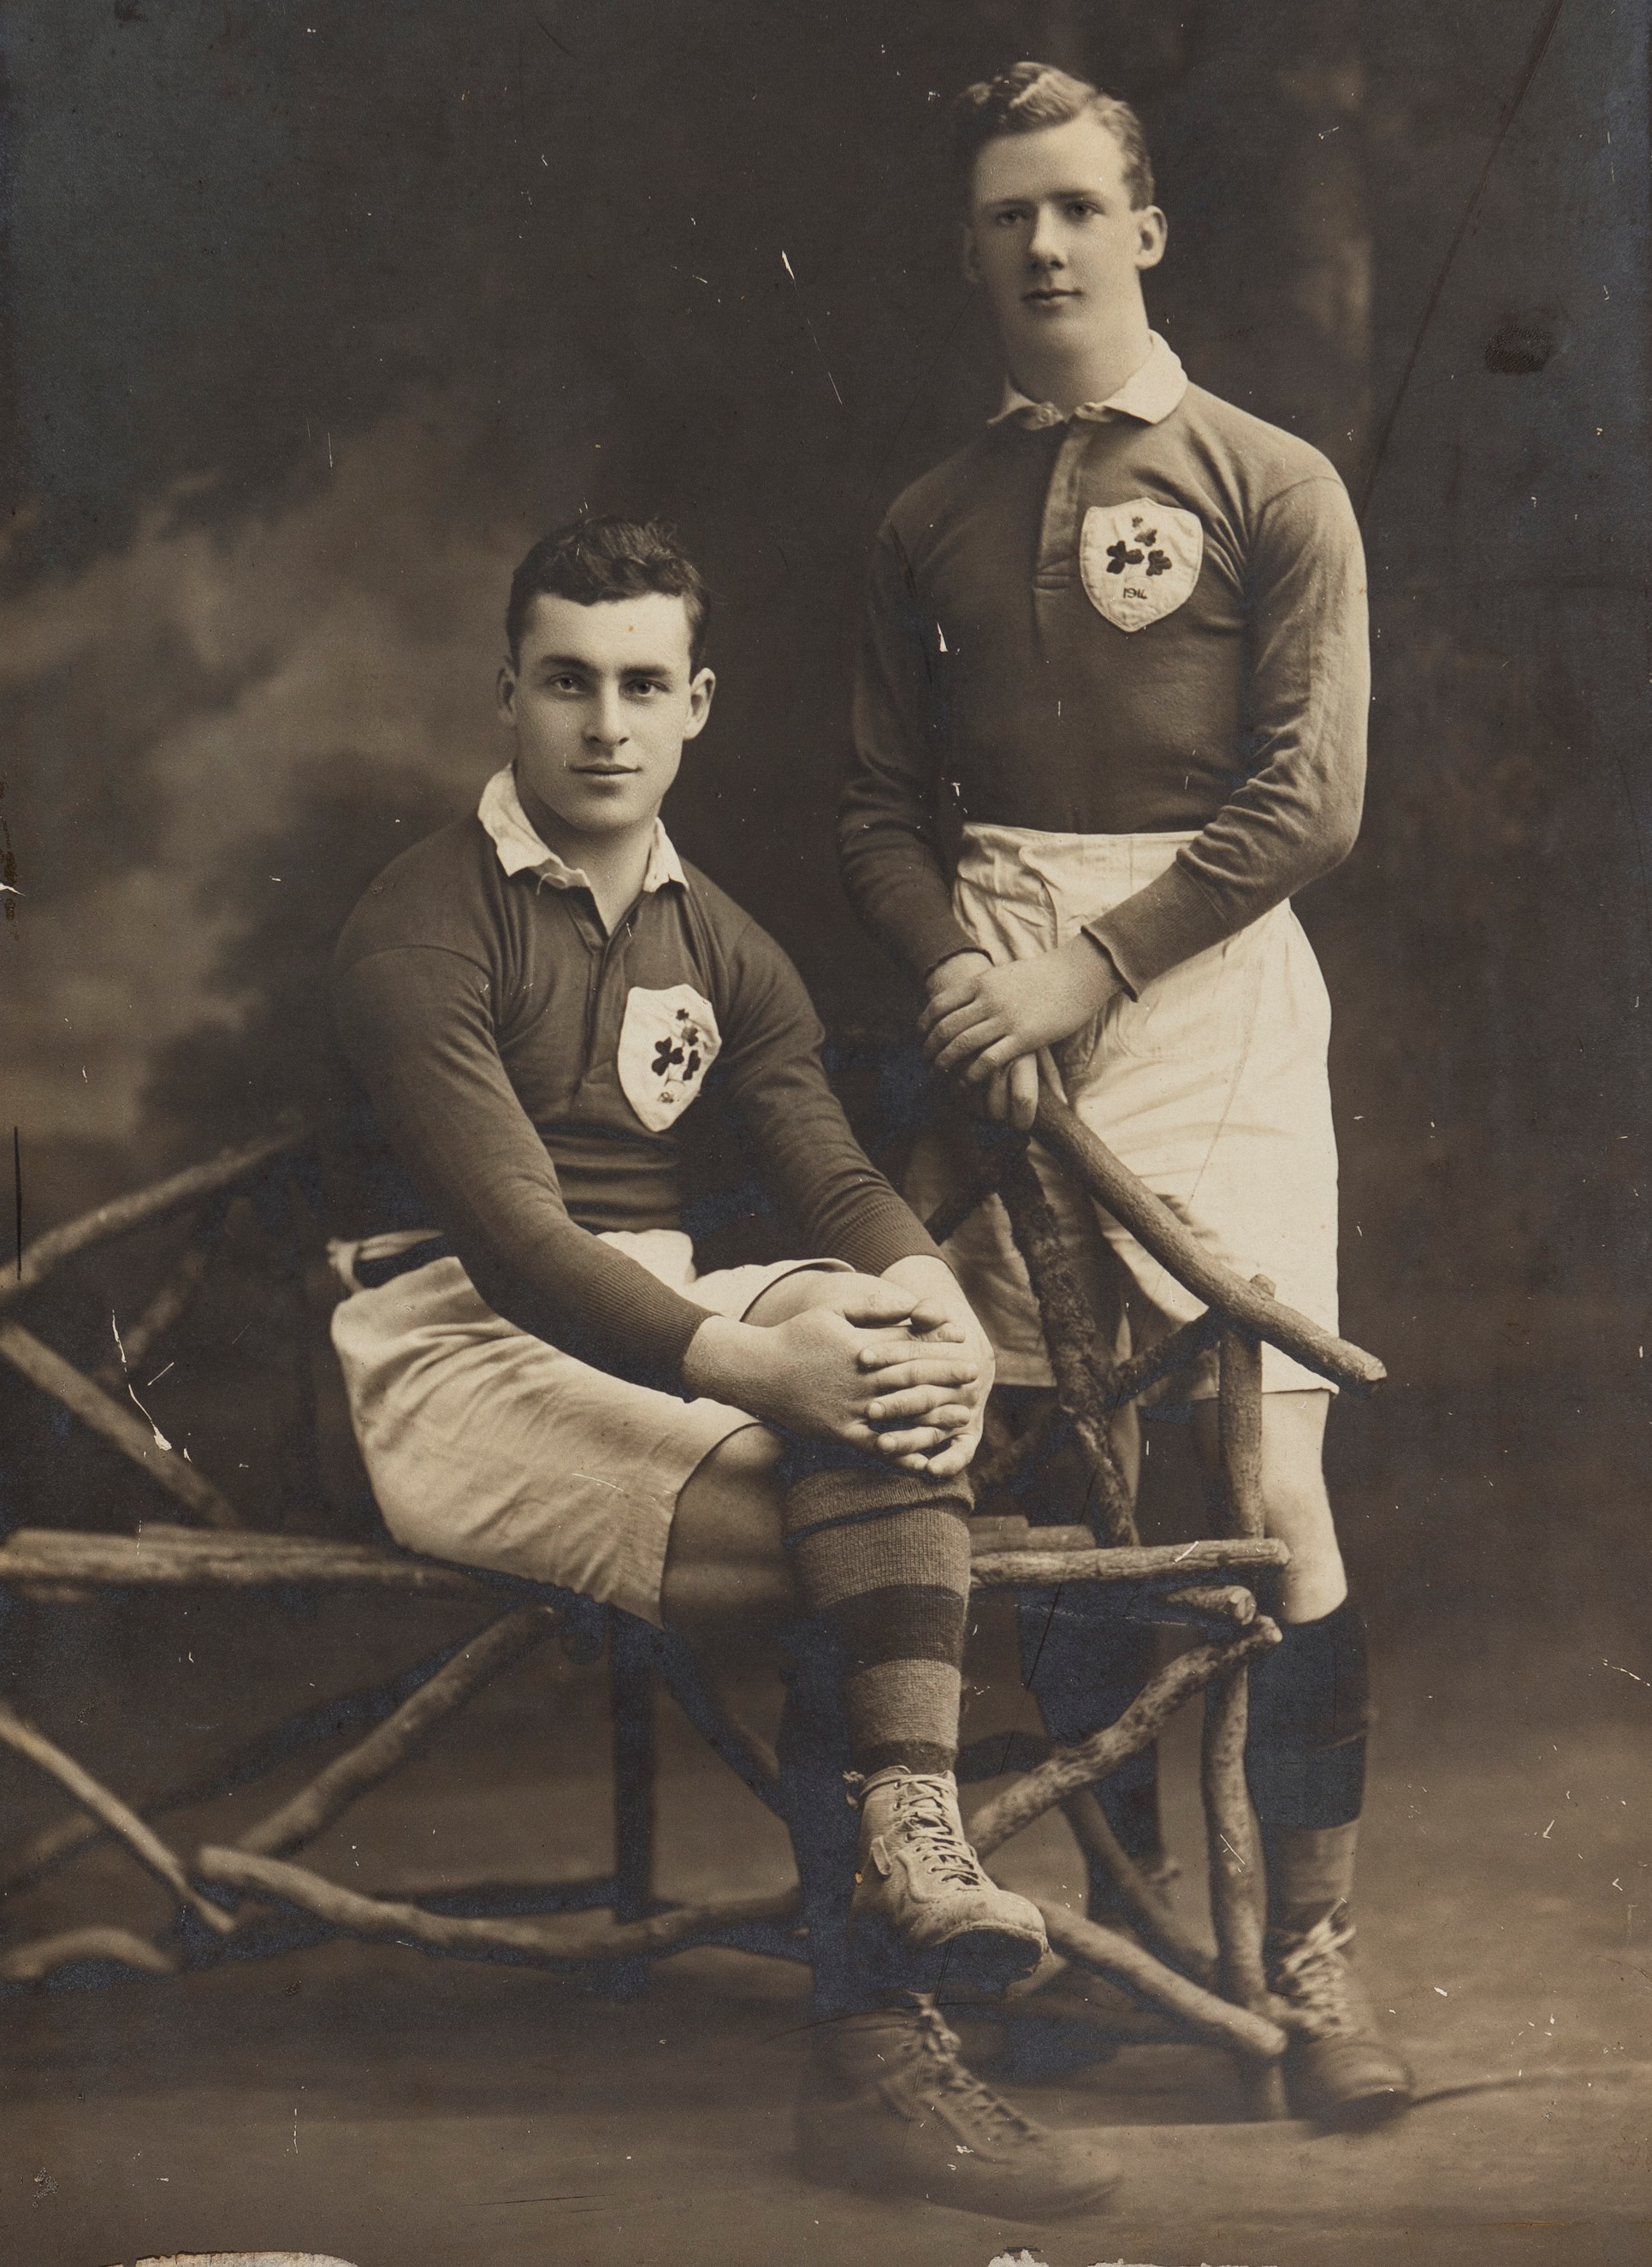 Great win for Ireland over Wales last weekend, the same match held 100 years ago has a UCC connection